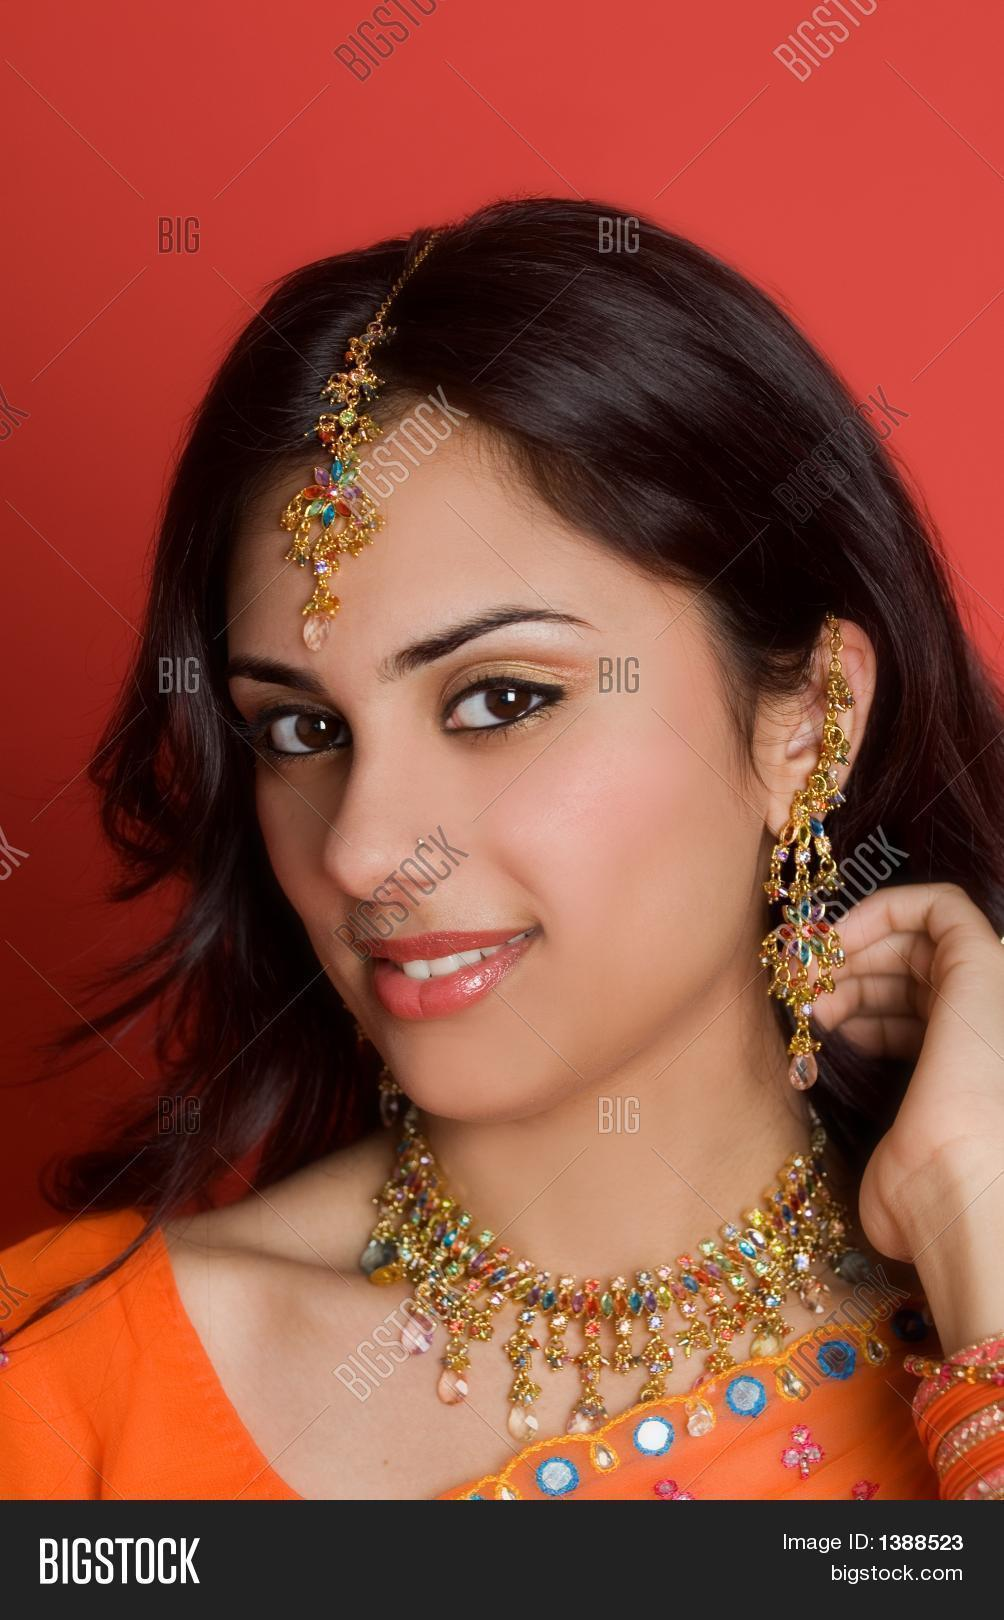 hindu single women in careywood Indian women for marriage - welcome to the simple online dating site, here you can chat, date, or just flirt with men or women sign up for free and send messages to single women or man.